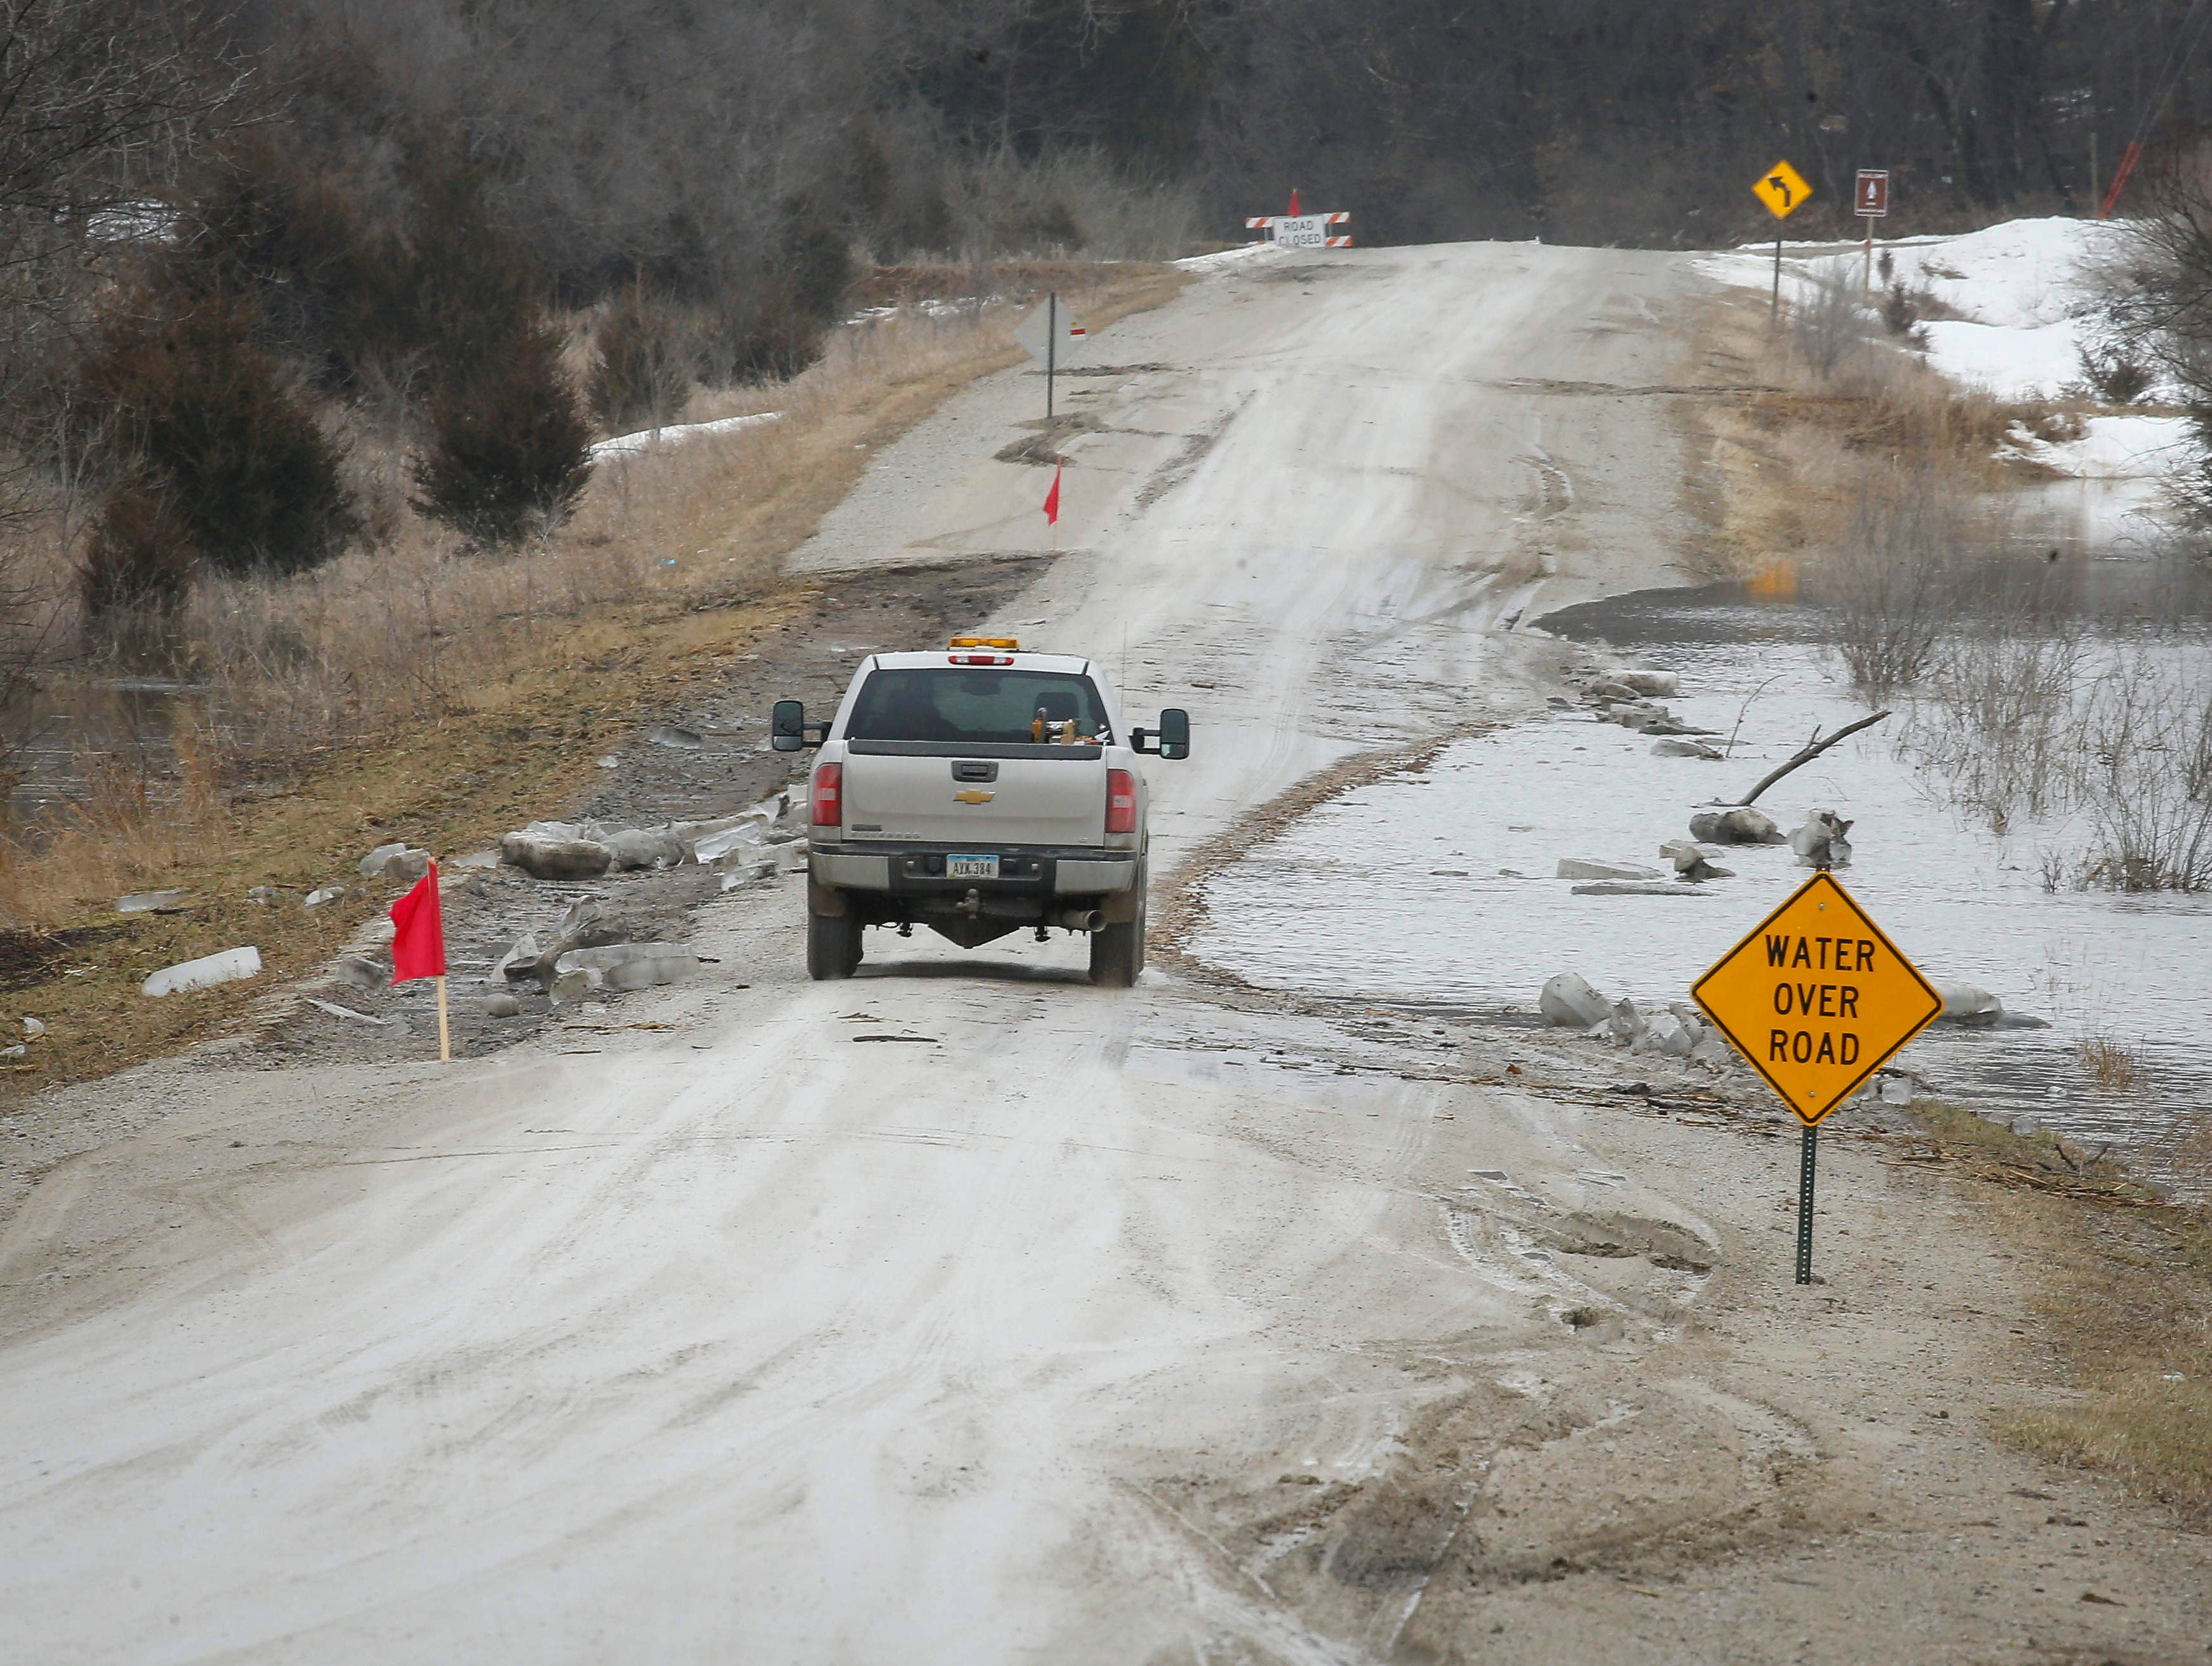 A driver navigates a truck across a small portion of road on H Avenue near Redfield in Dallas County after high water from the South Raccoon River flooded the road on Thursday, March 14, 2019.